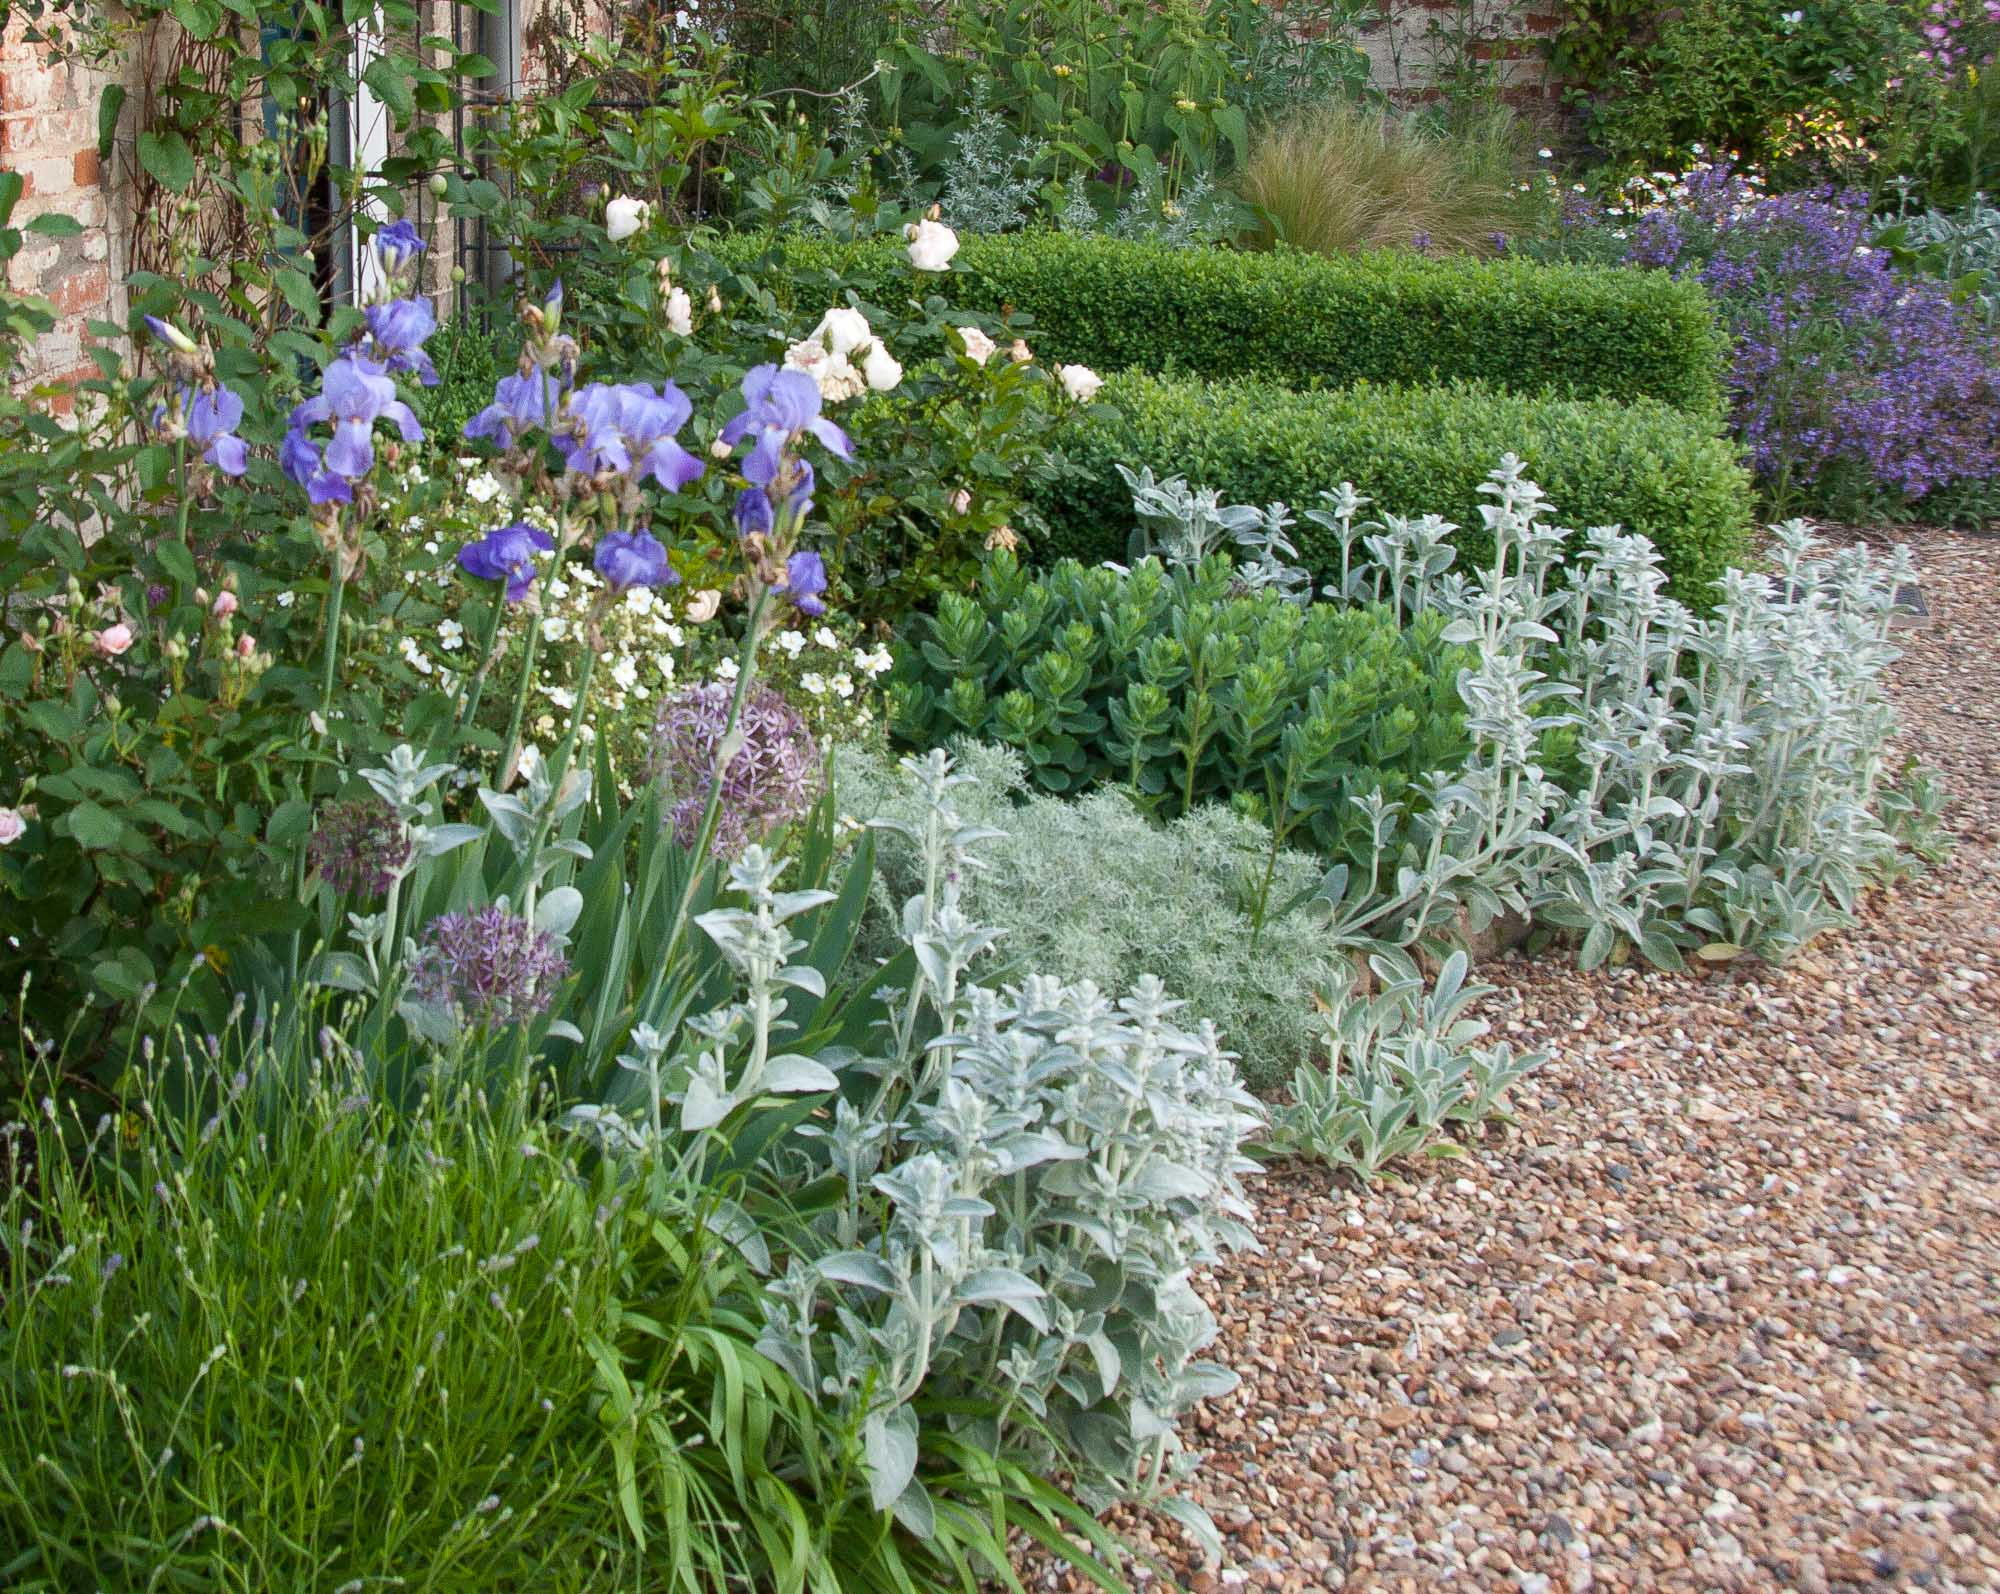 In early Summer, Iris and Alliums provide interesting shapes and toning colour against a background of th silvery foliage of Stachys and Artemisia